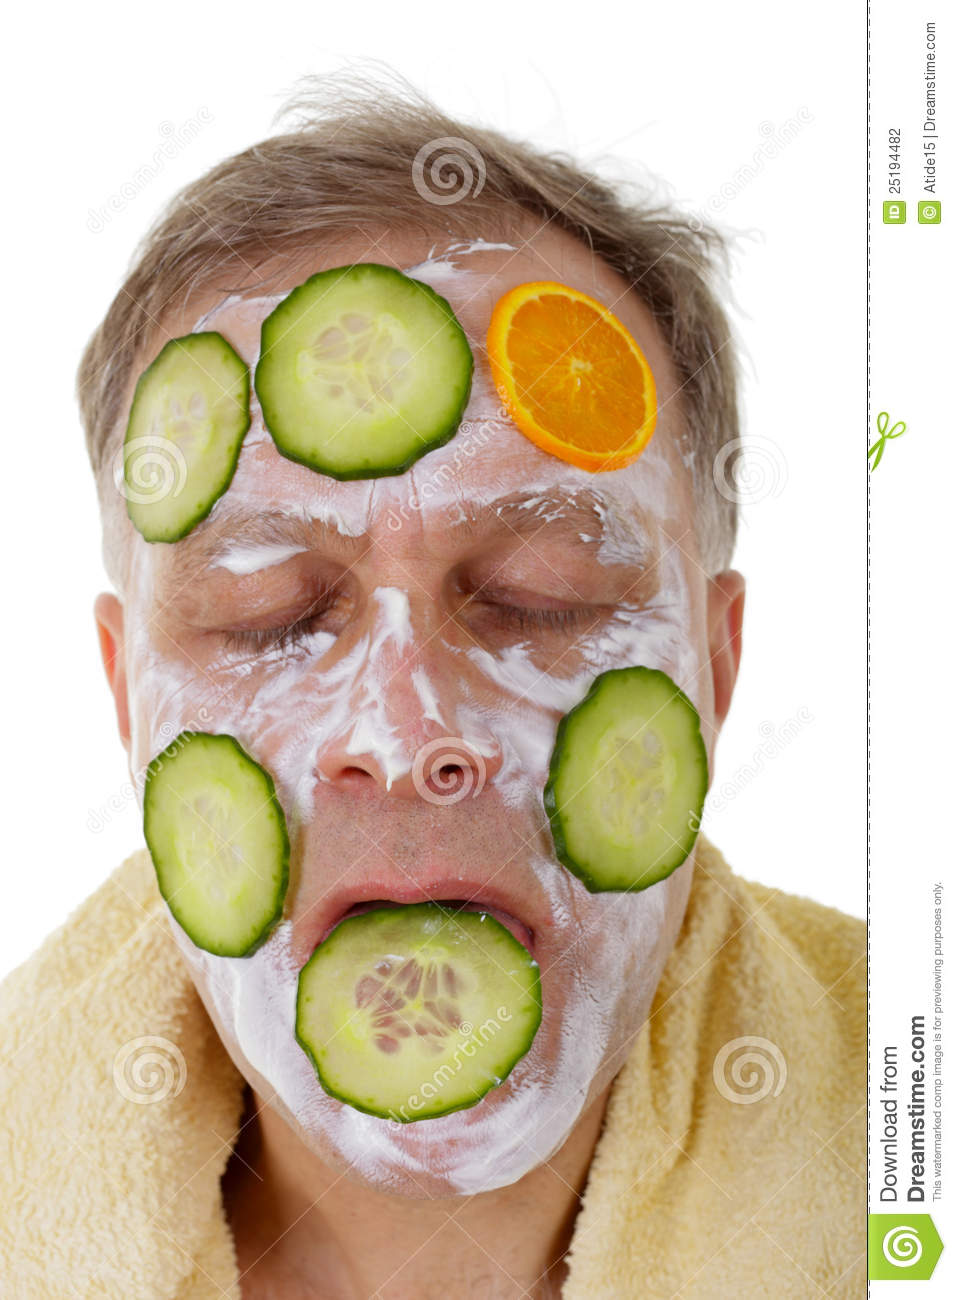 Other variant cucumber facial masks All above